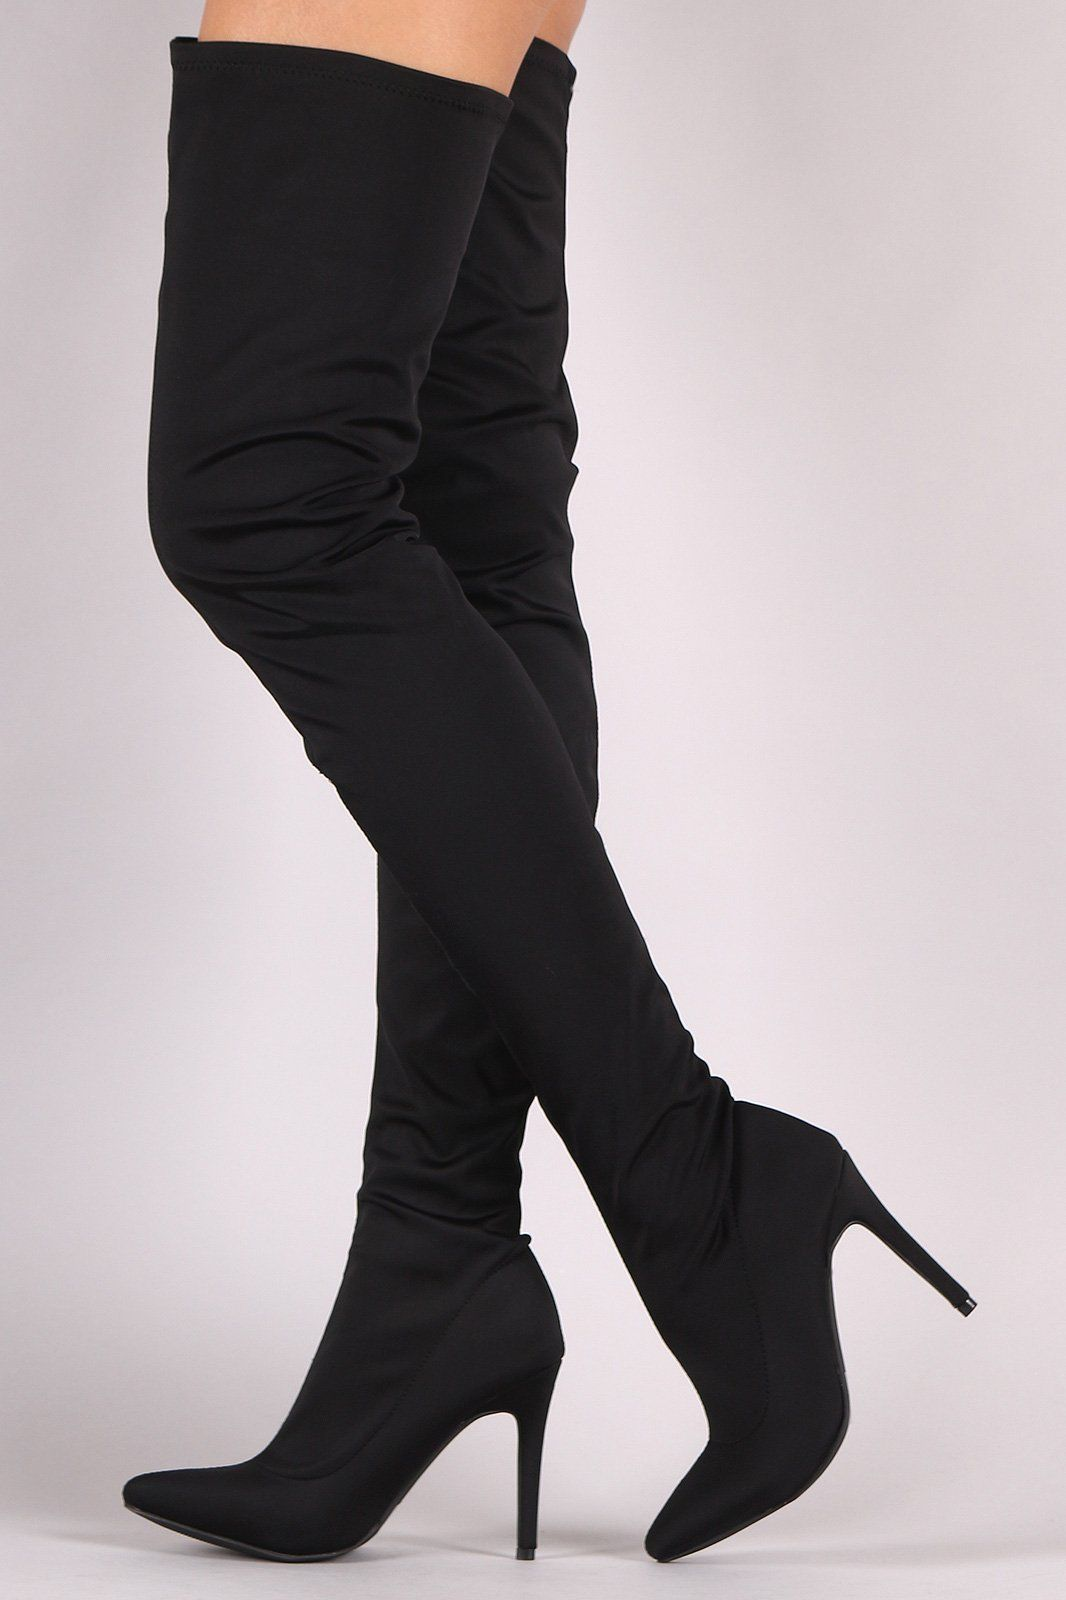 8a0406864d0 These over the knee boots feature a slightly stretched elastane shaft